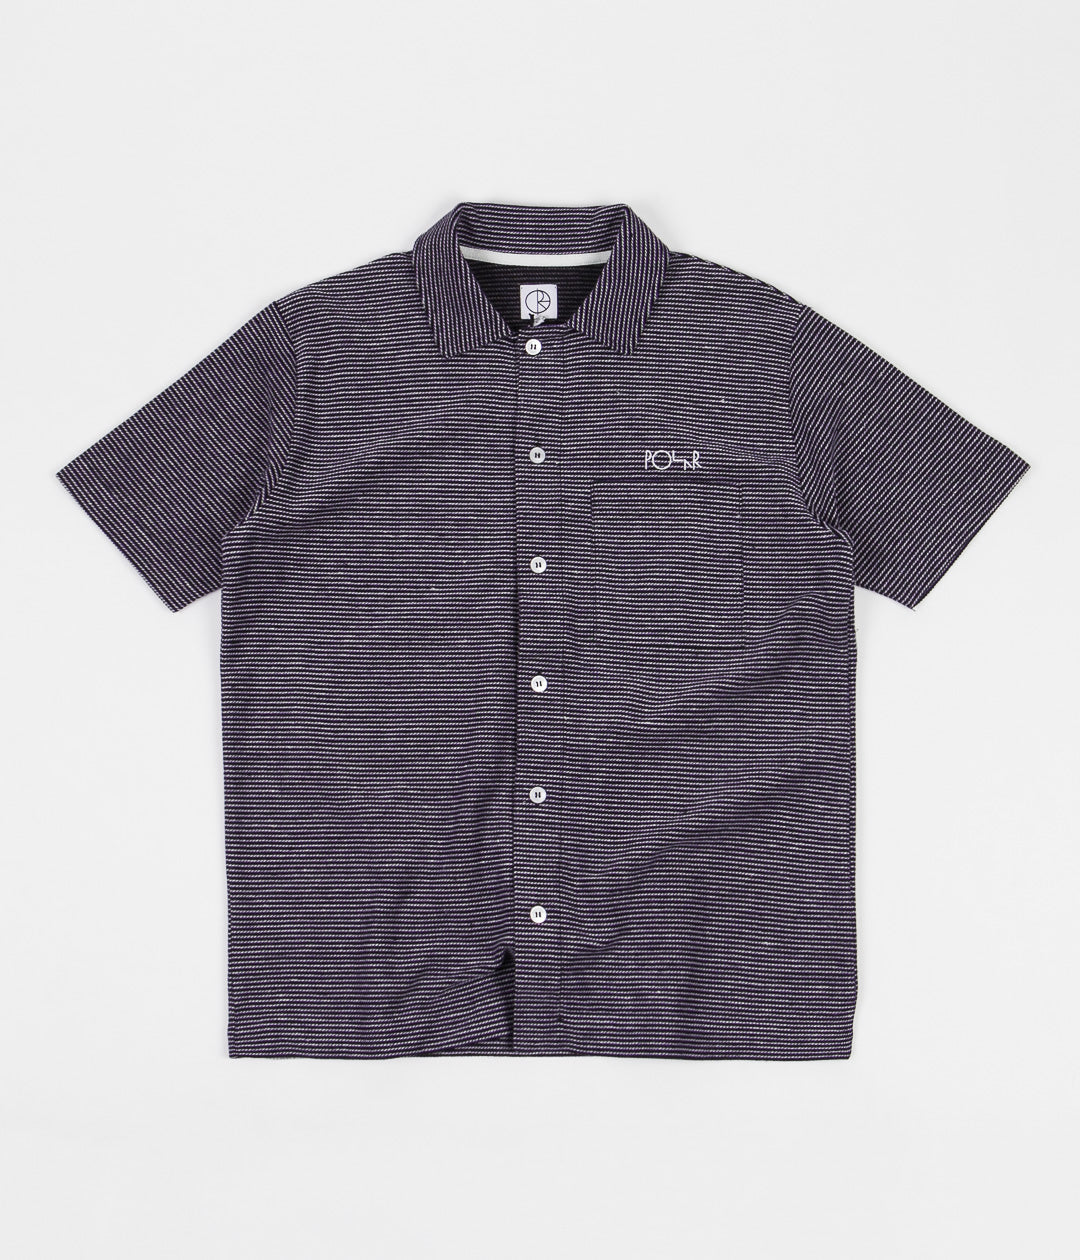 Polar Patterned Shirt - Stripe - Black / Purple